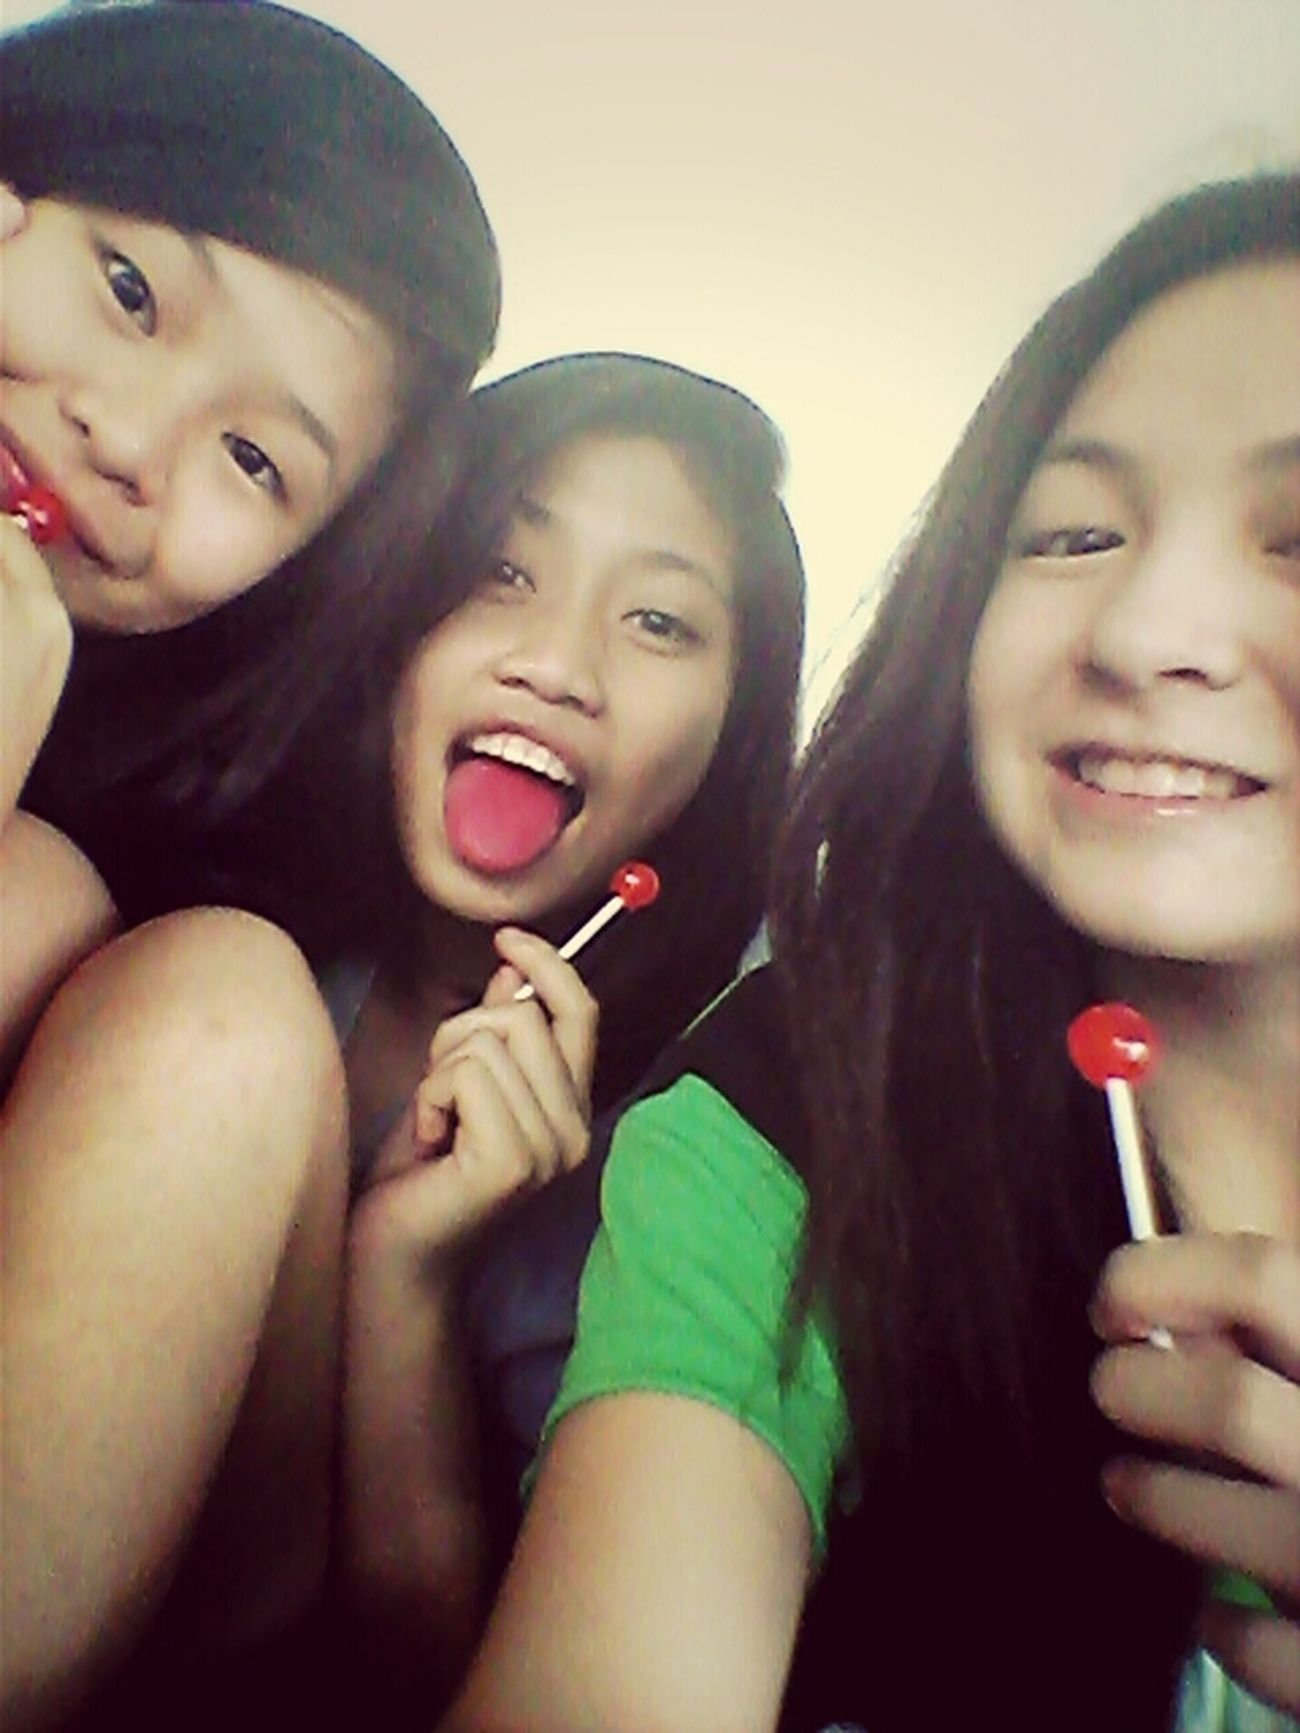 Lollipop ^-^